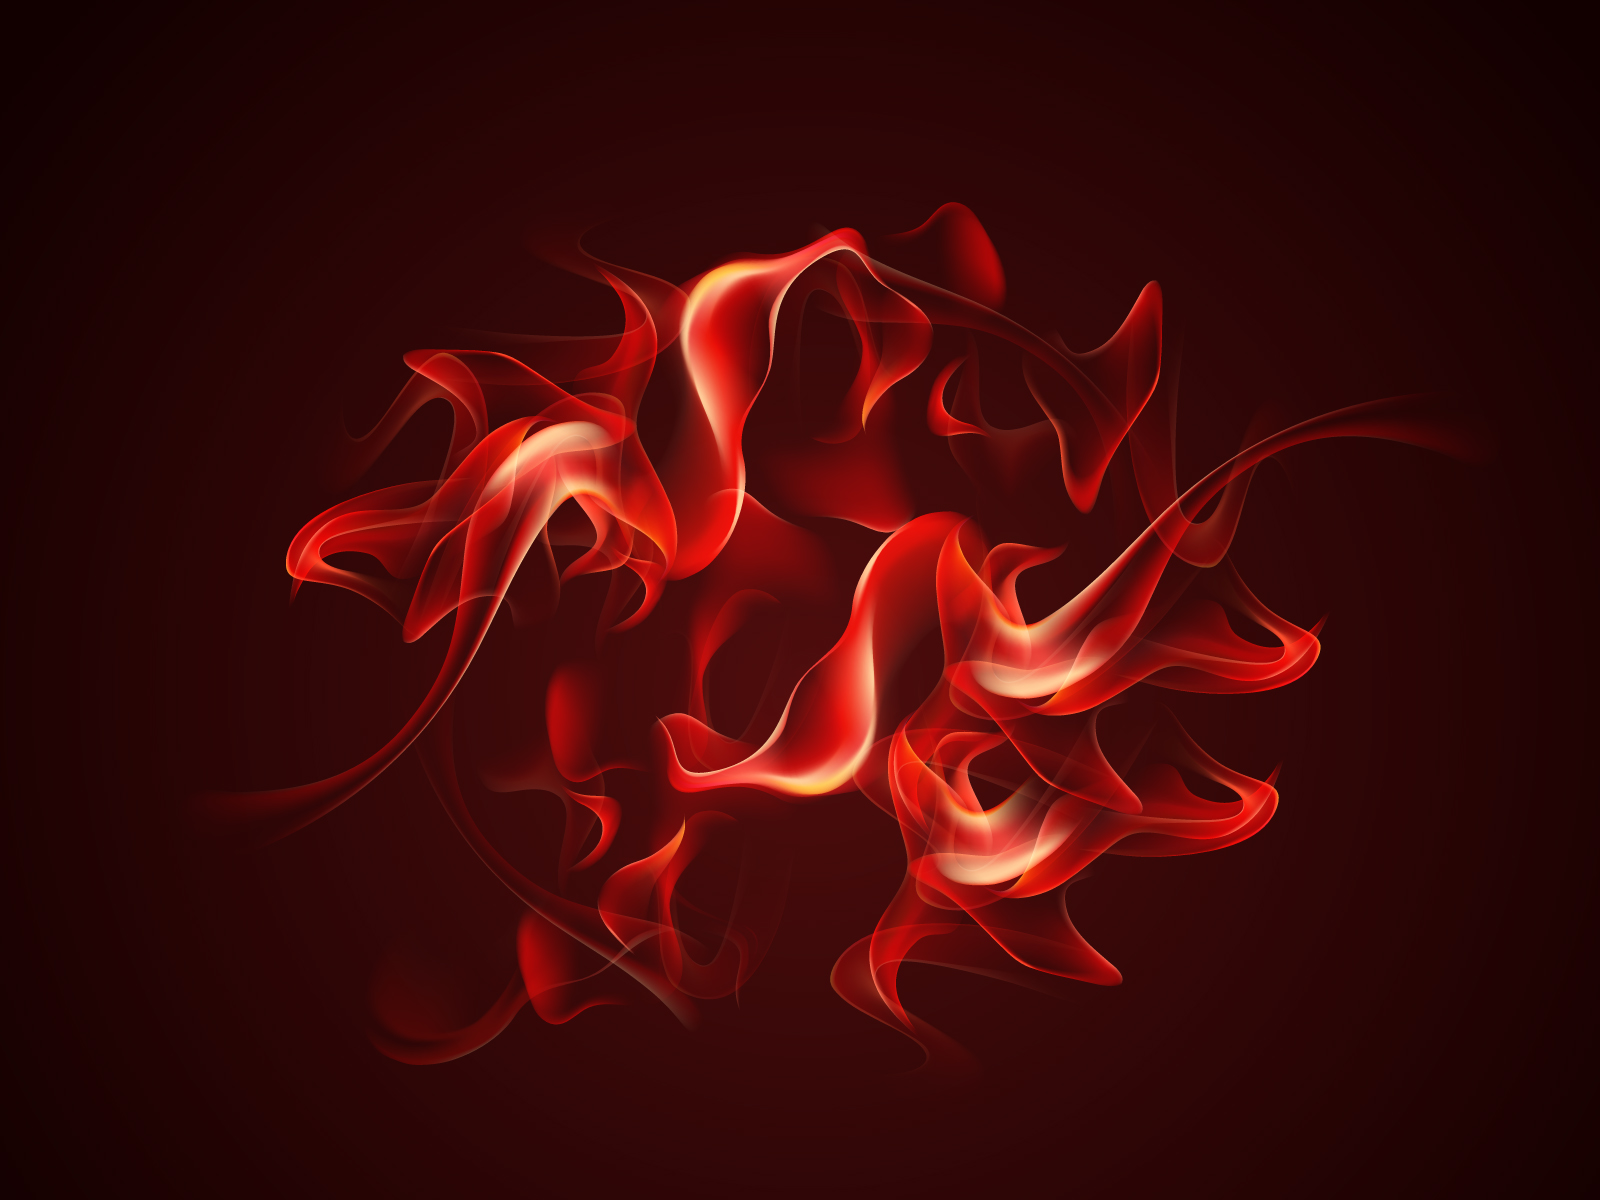 red fire backgrounds 3d black colors design pink red